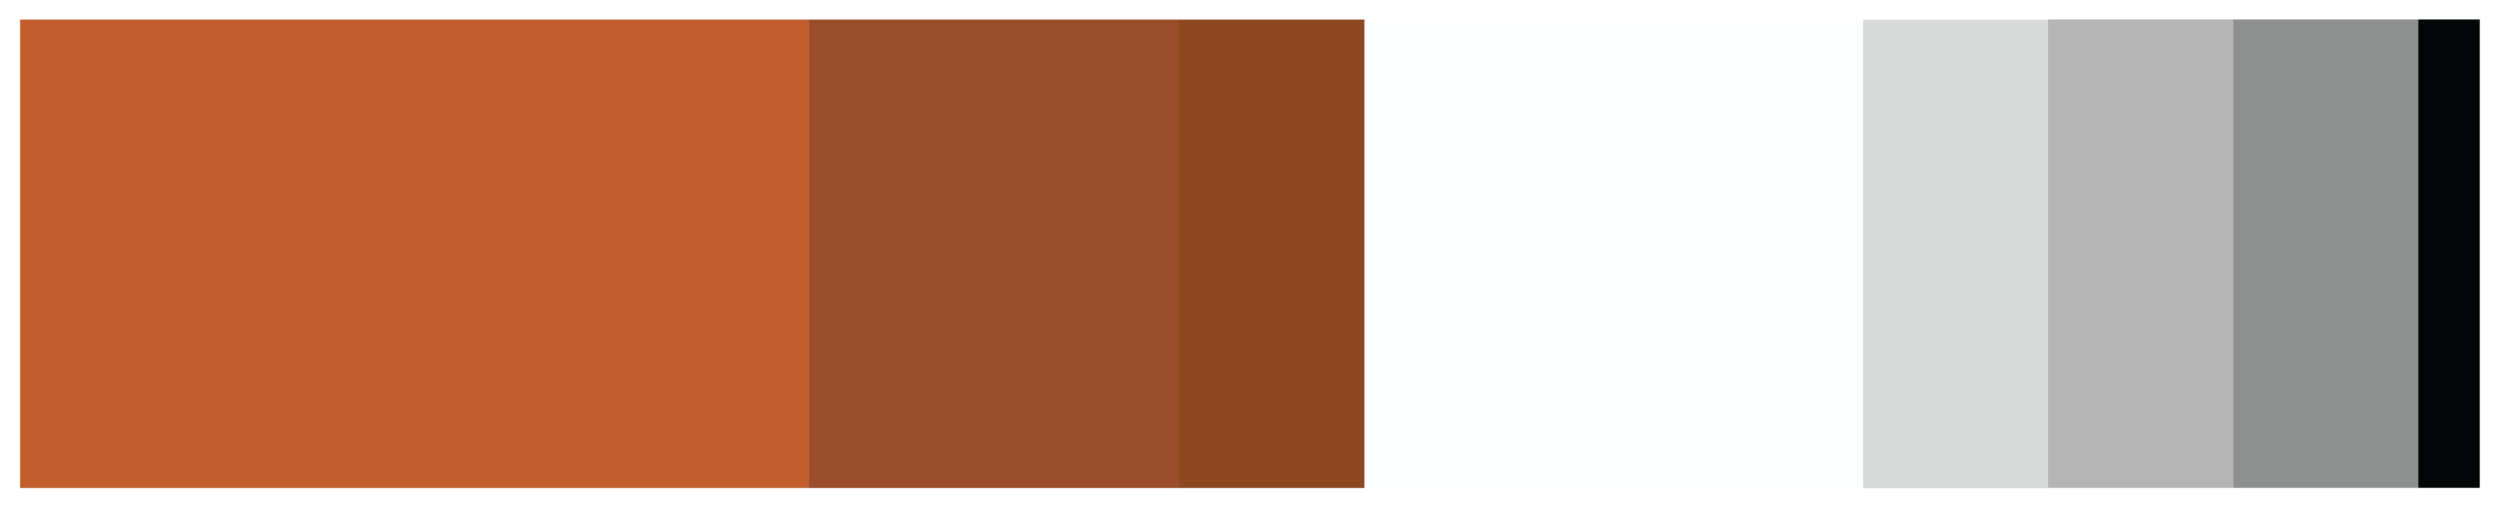 Beef Cake Color Pallete-03.png